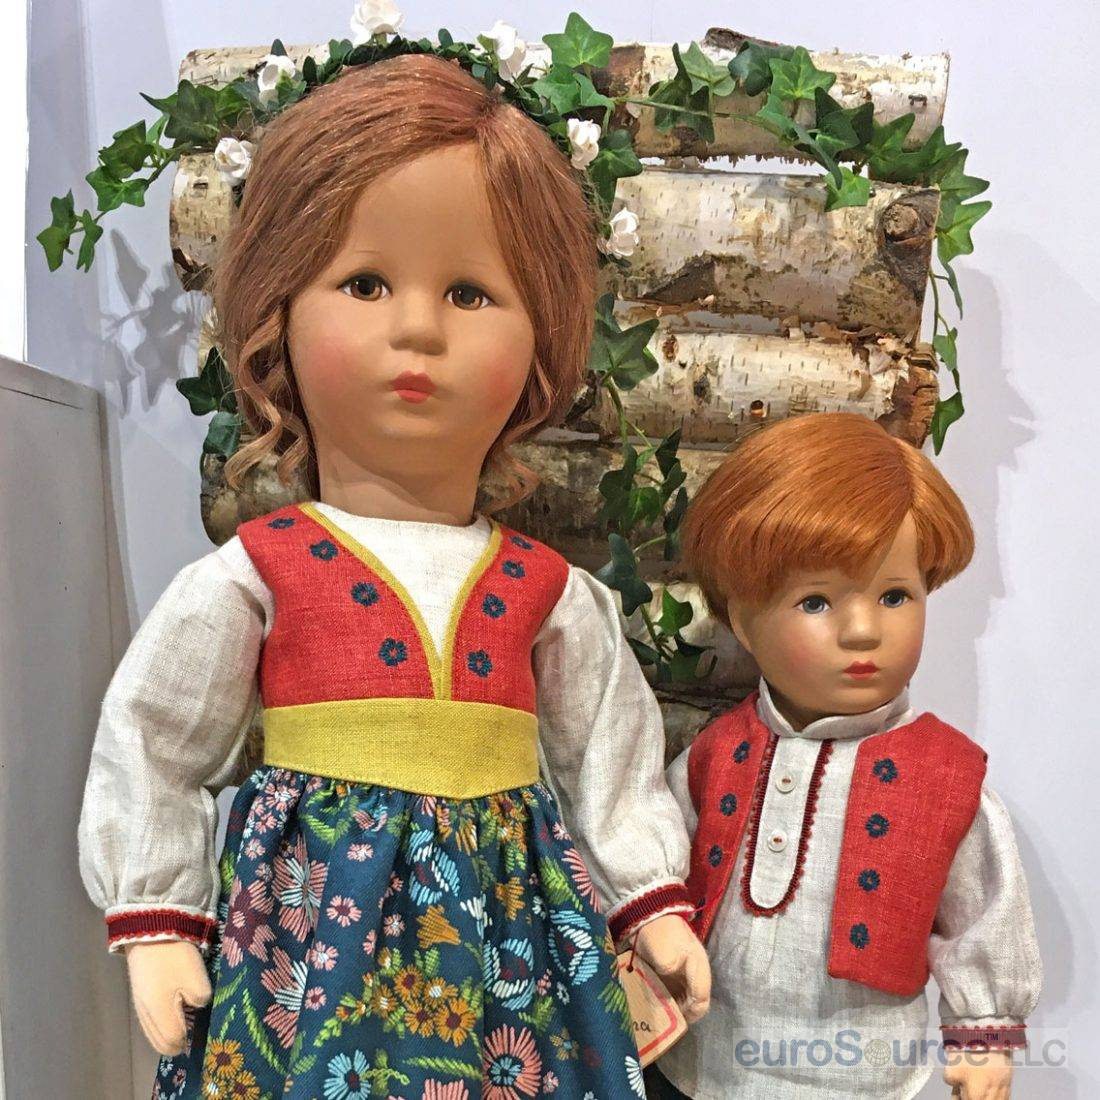 Two Kathe Kruse dolls for collectors